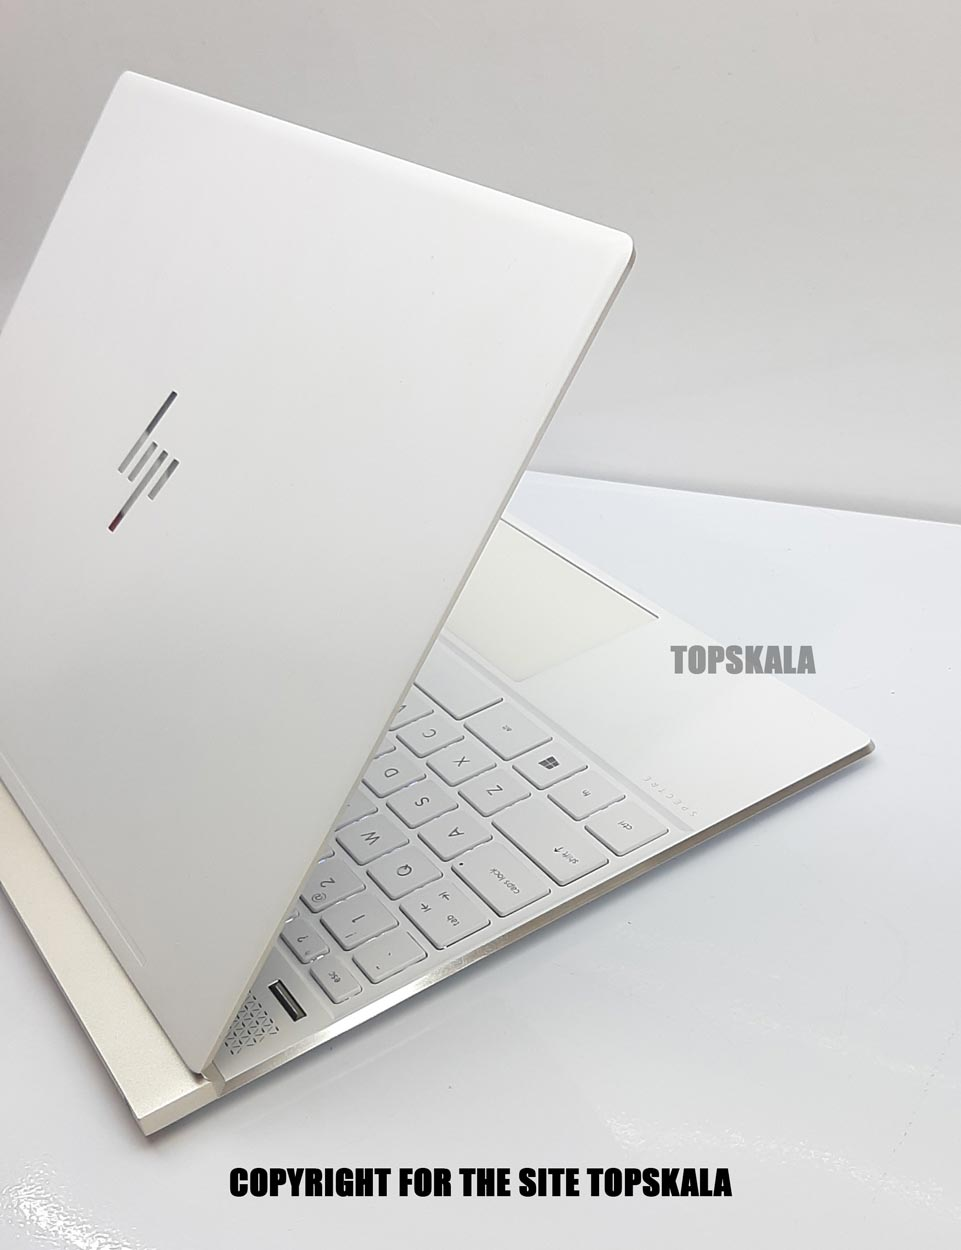 لپ تاپ استوک اچ پی مدل HP Spectre 13 - AF009TU با مشخصات i5-8th-8GB-512GB-SSD-4GB-intel-UHD-620laptop-stock-hp-model-13-AF009TU-i5-8250U-8GB-512GB-SSD-4GB-intel-UHD-620